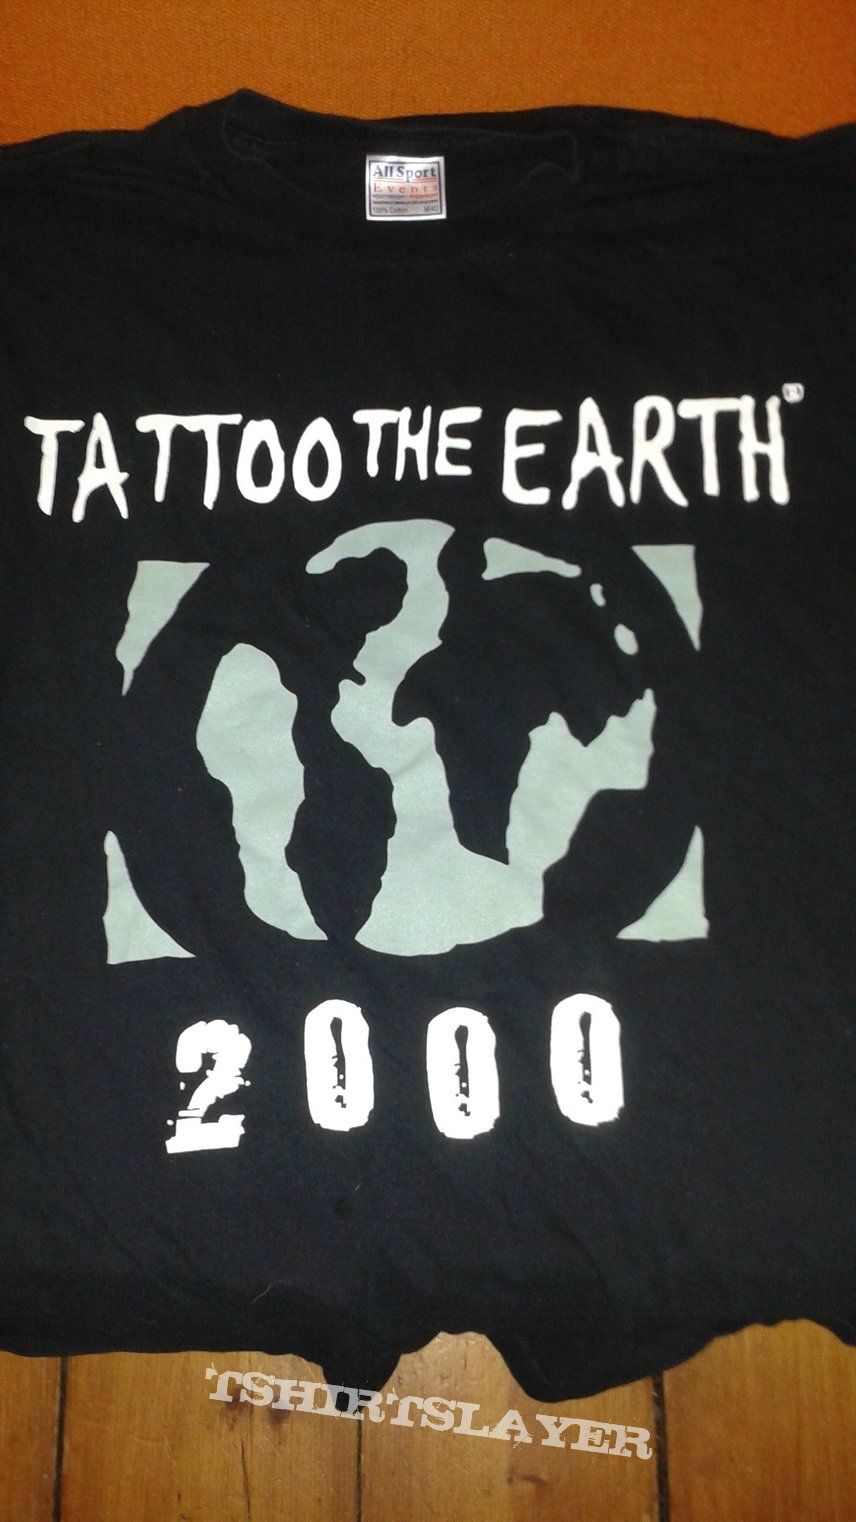 Tattoo The Earth package tour 2000 Slayer, Sepultura, Slipknot, Sevendust, (Hed) PE, Nashville Pussy t-shirt.